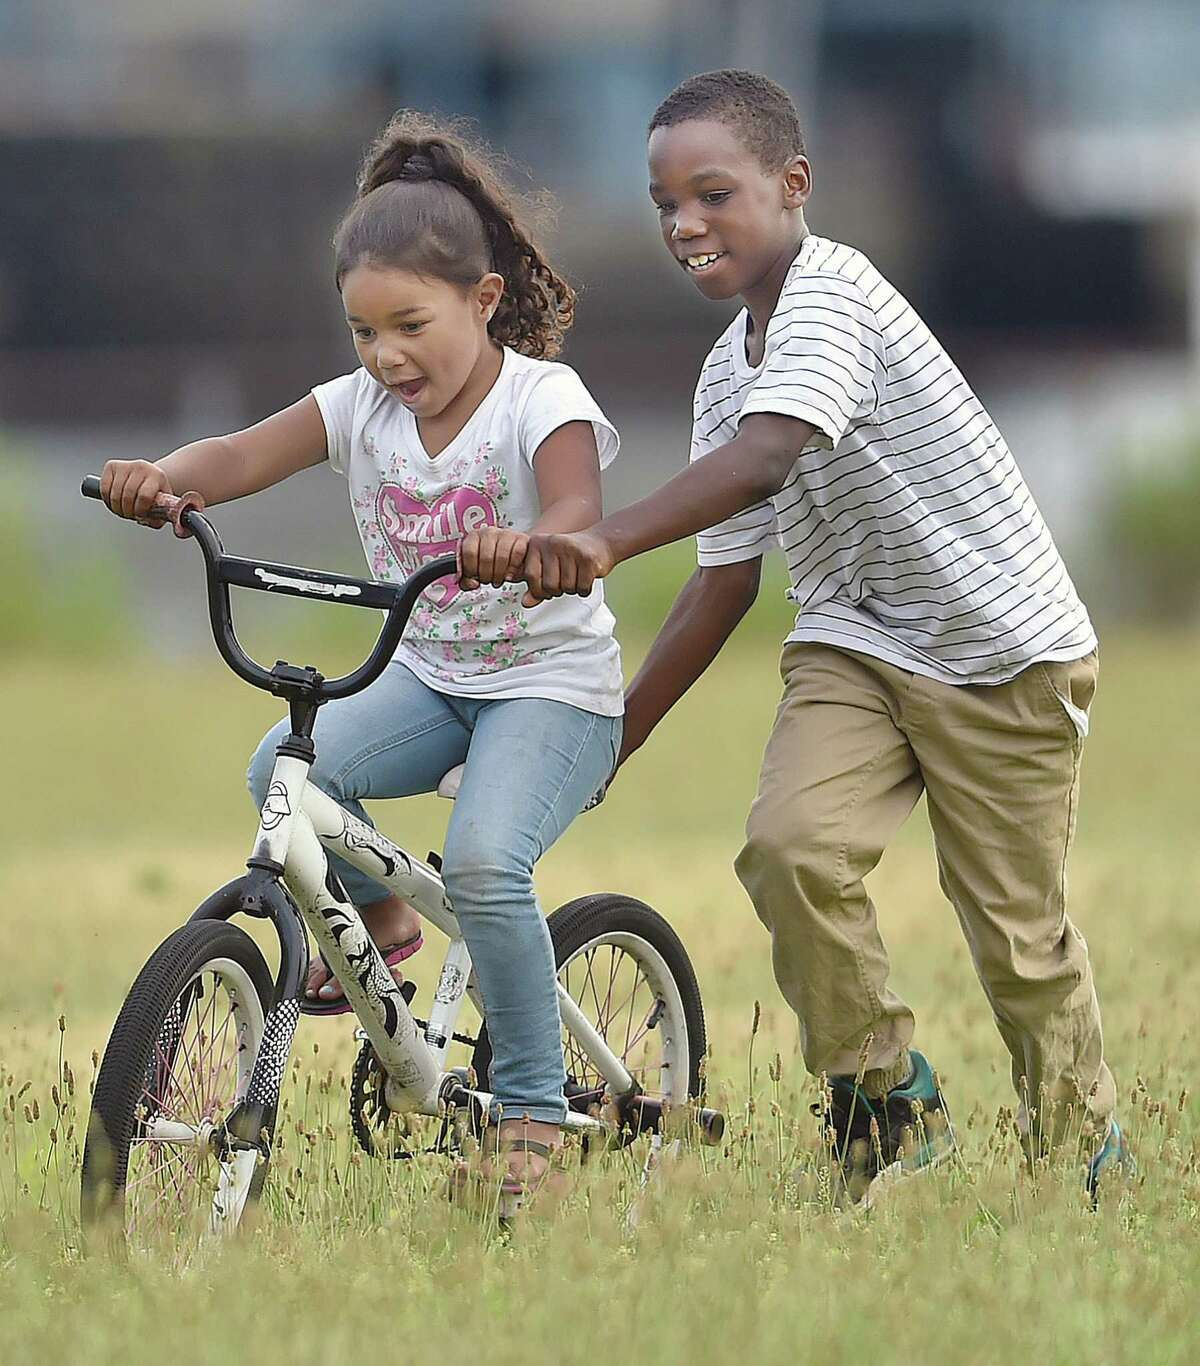 Naeem Jenkins, 10, teaches 5-year-old Kaylany Fargas how to ride a bike. We all need a little more kindness in our lives.